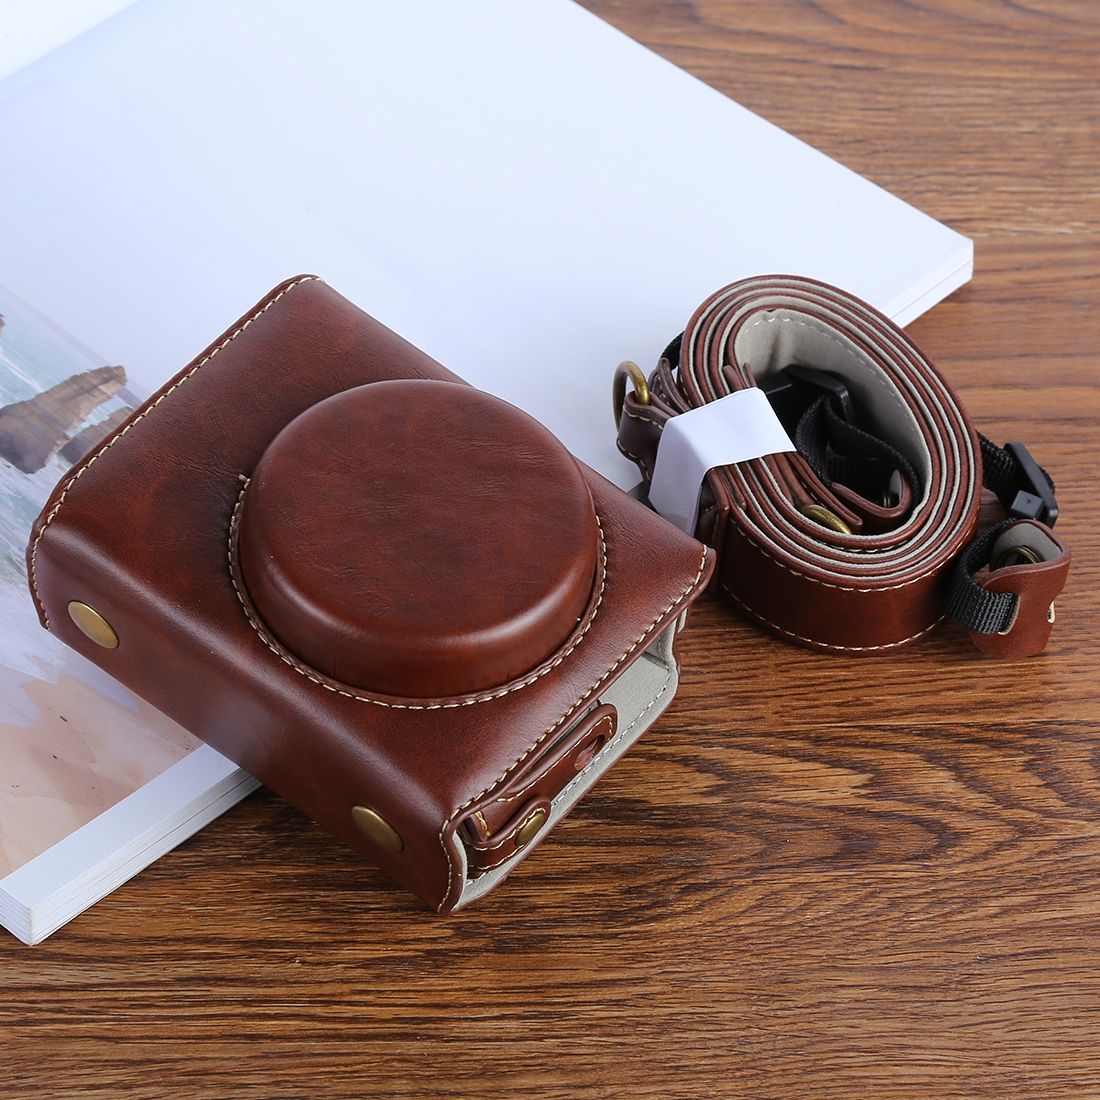 G7XII PU Leather Camera Protective bag for Canon Powershot G7X Mark 2 G7XII Digital camera, with Strap (Coffee)